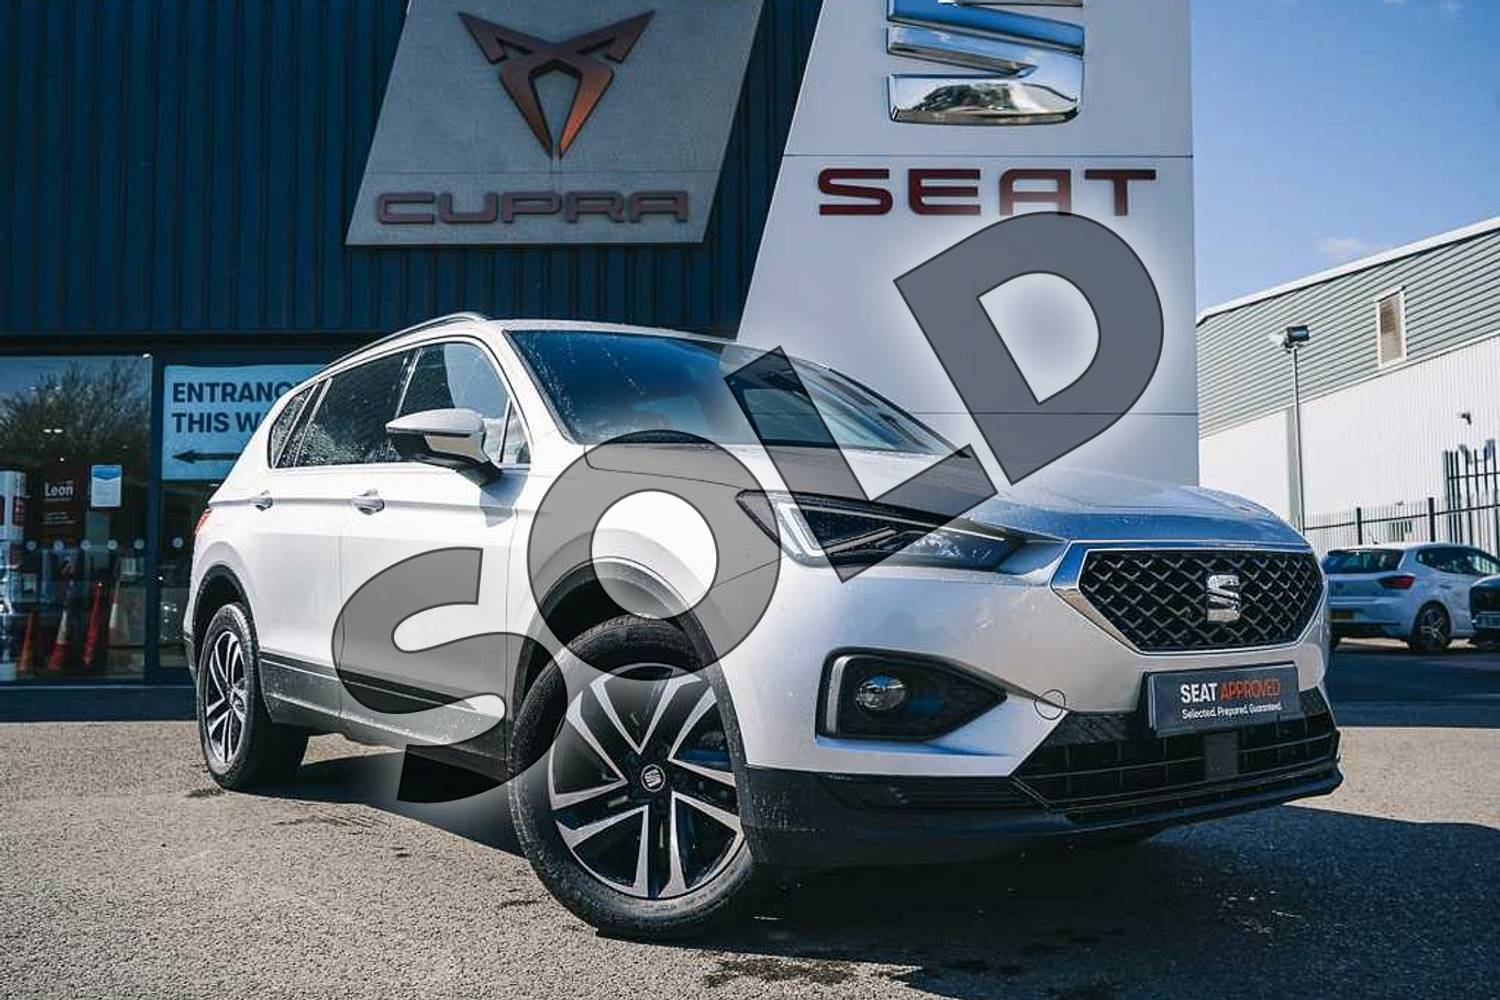 2019 SEAT Tarraco Estate 1.5 TSI EVO SE Technology 5dr in Silver at Listers SEAT Coventry